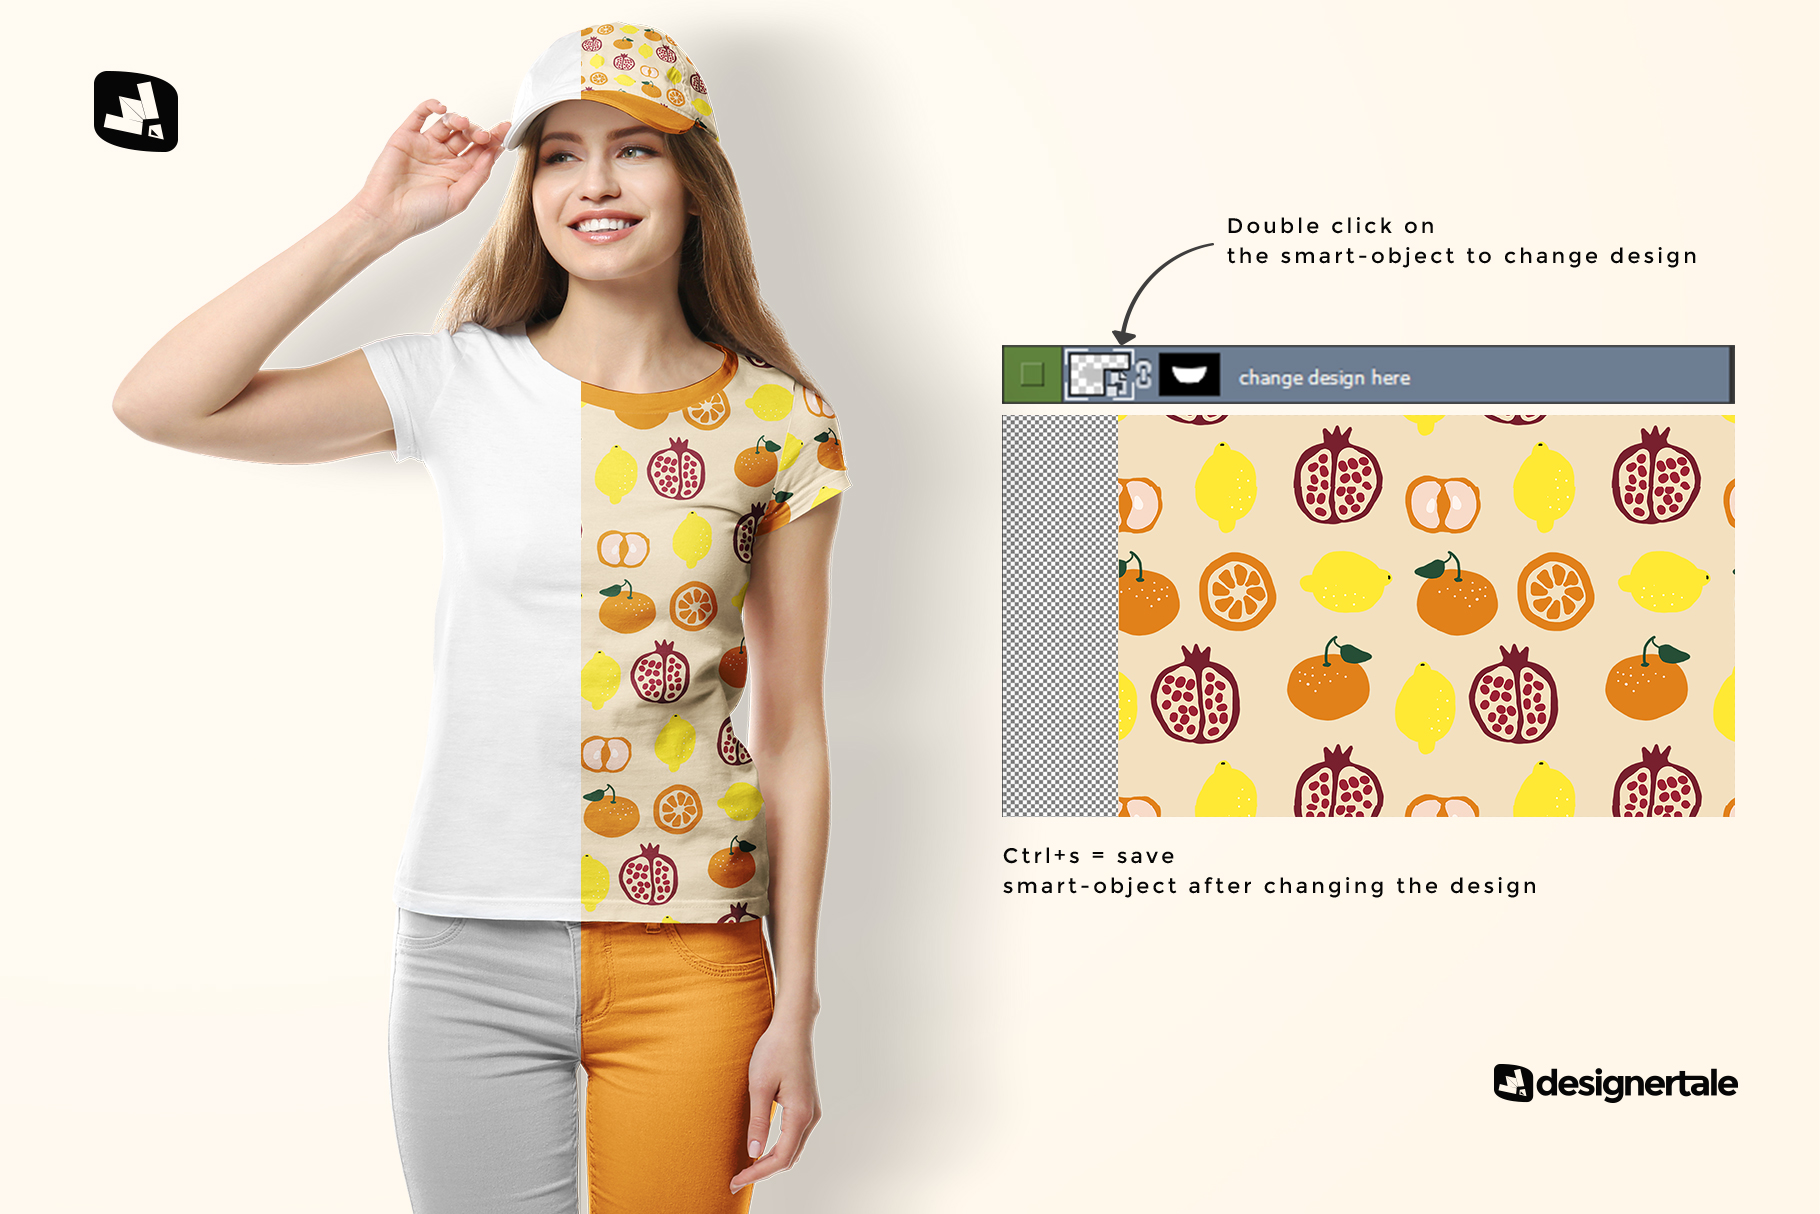 how to change design of the women's tshirt with cap mockup